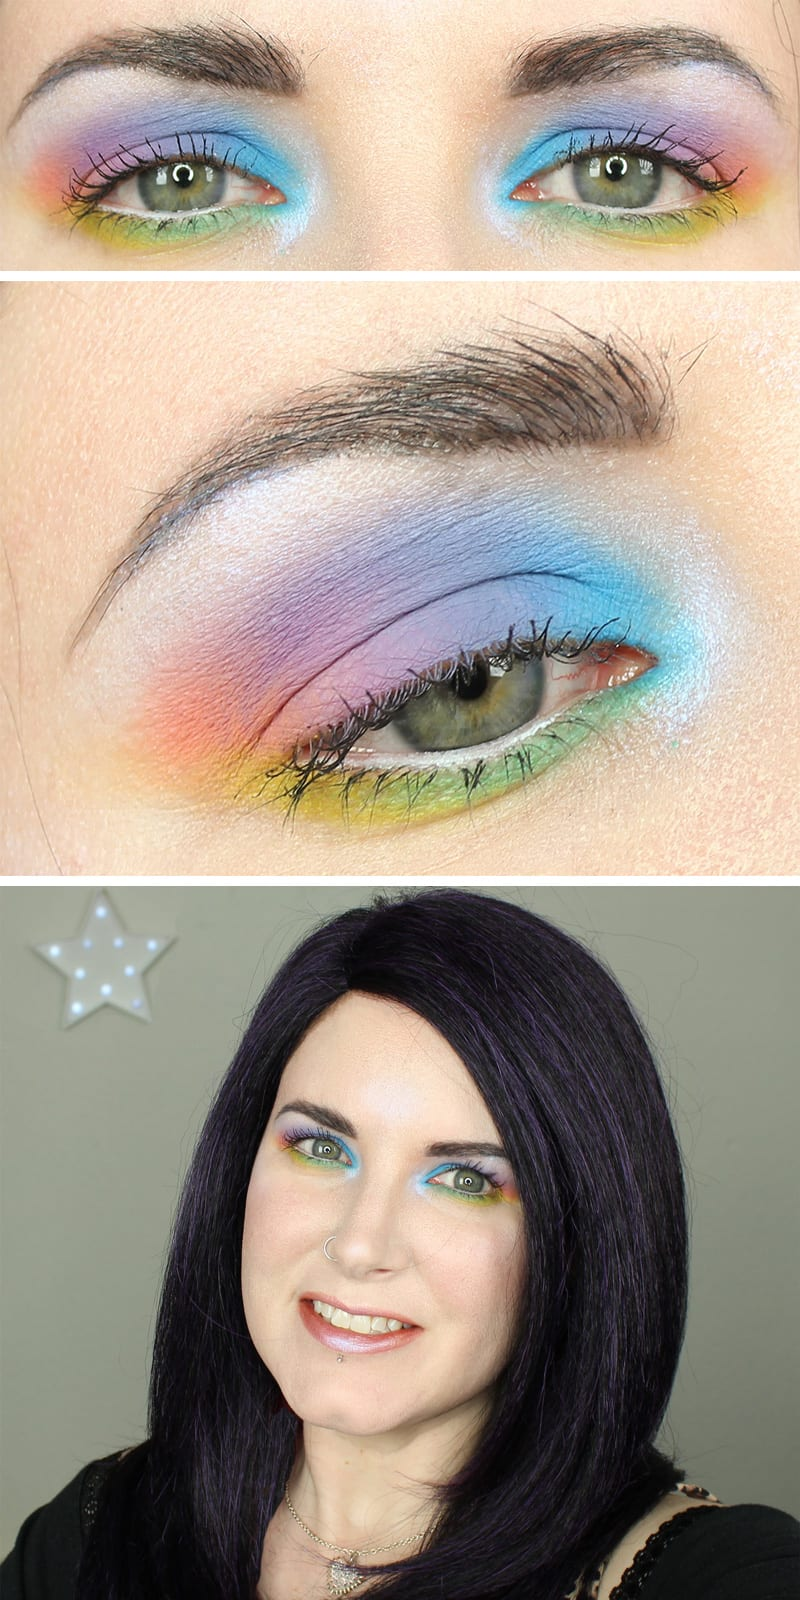 I've got a fun Kat Von D Pastel Goth Rainbow Makeup Tutorial for you. It's hooded eye friendly, of course. It would be perfect for a Pride parade or any time you wanted bright rainbow eyes. I had so much fun putting together this kawaii pastel goth makeup tutorial.